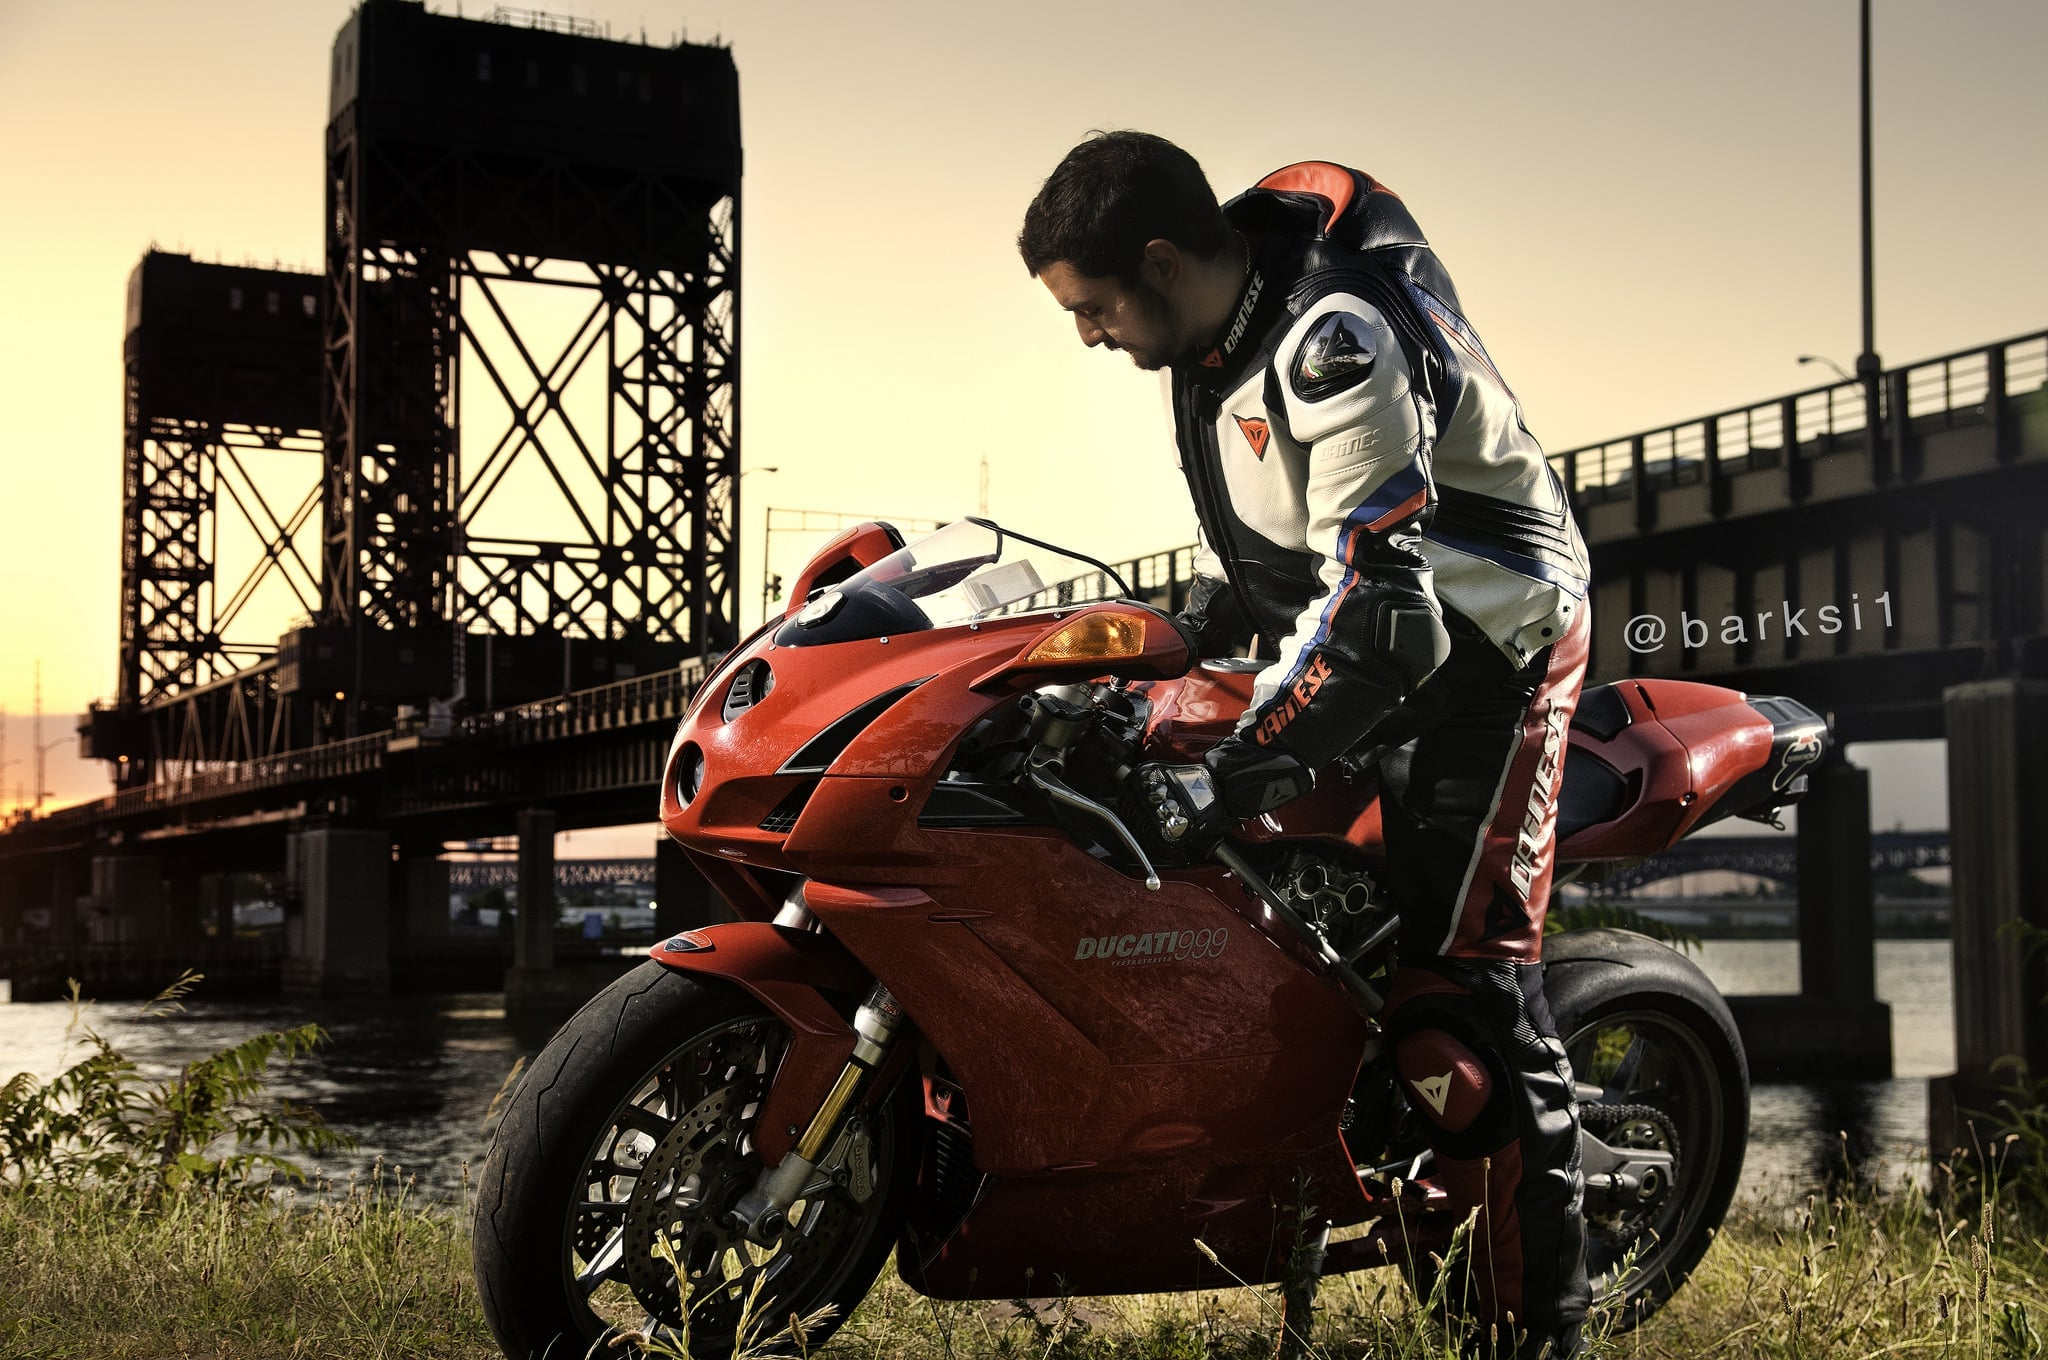 Anime 2014 Wallpaper 24 Ducati 999 Hd High Quality Wallpapers